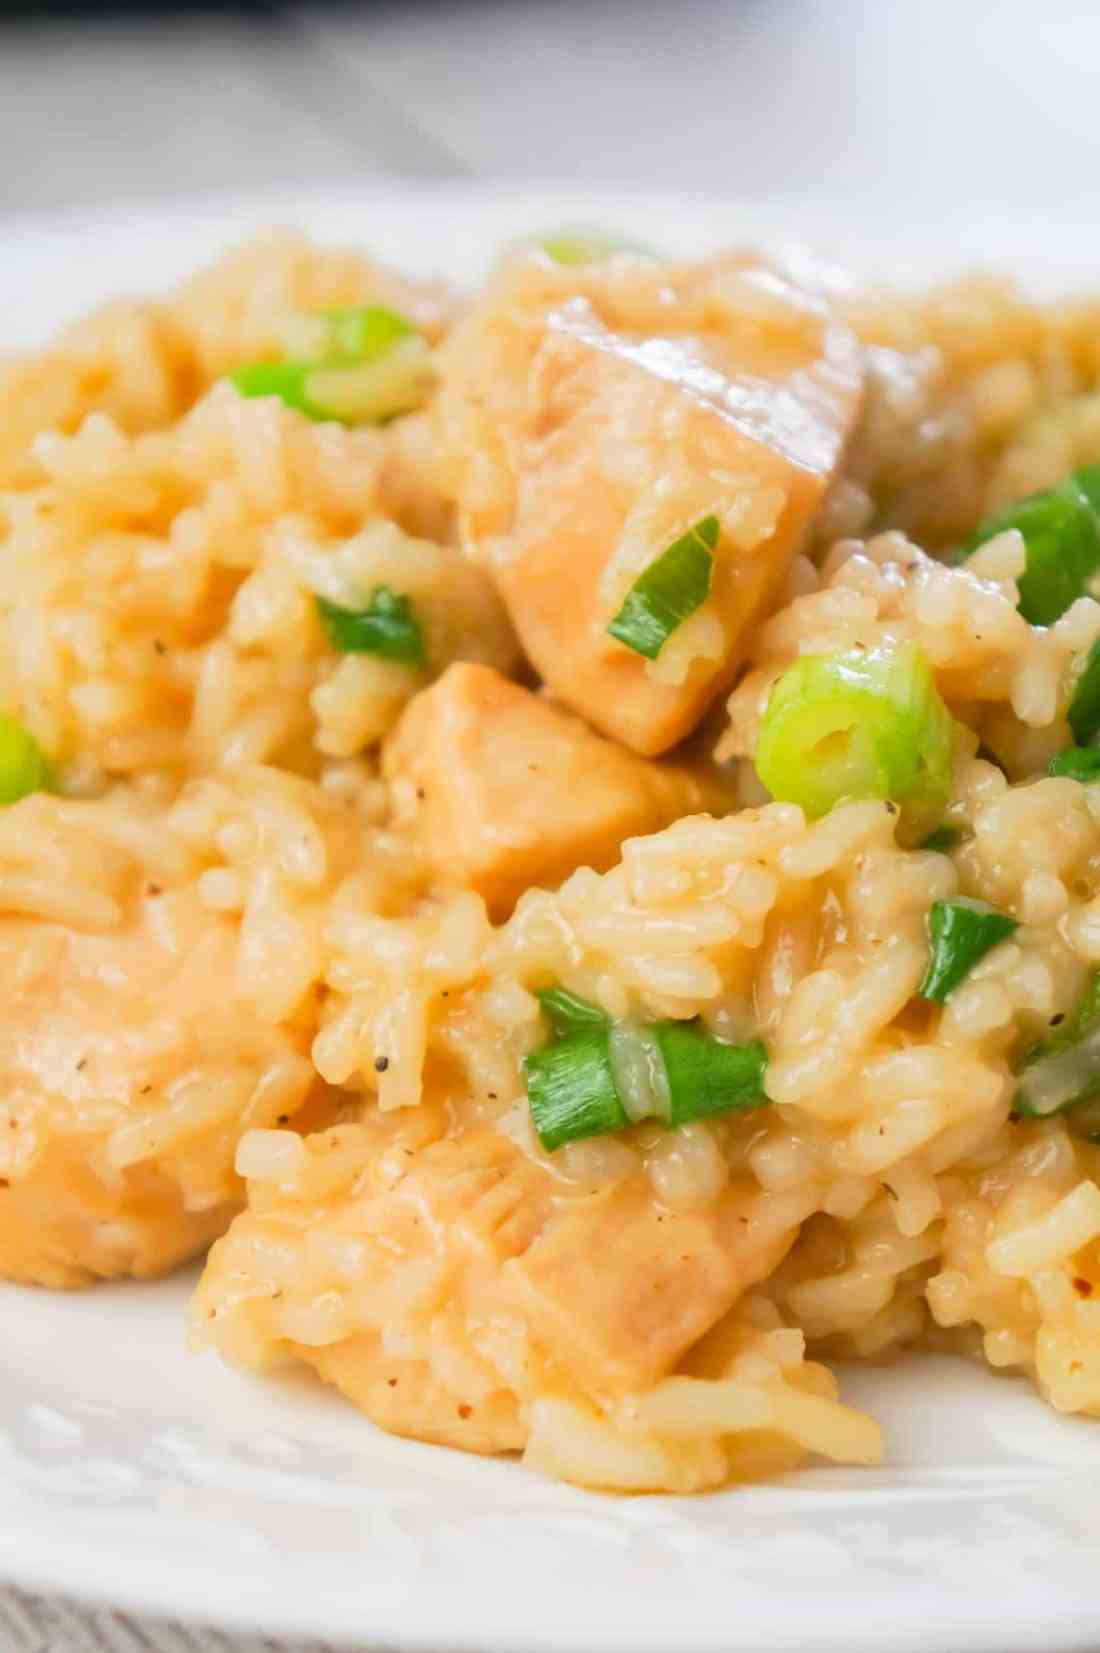 Instant Pot Honey Garlic Chicken and Rice is an easy pressure cooker rice dish loaded with chunks of chicken breast and a delicious sweet and savoury honey garlic sauce.